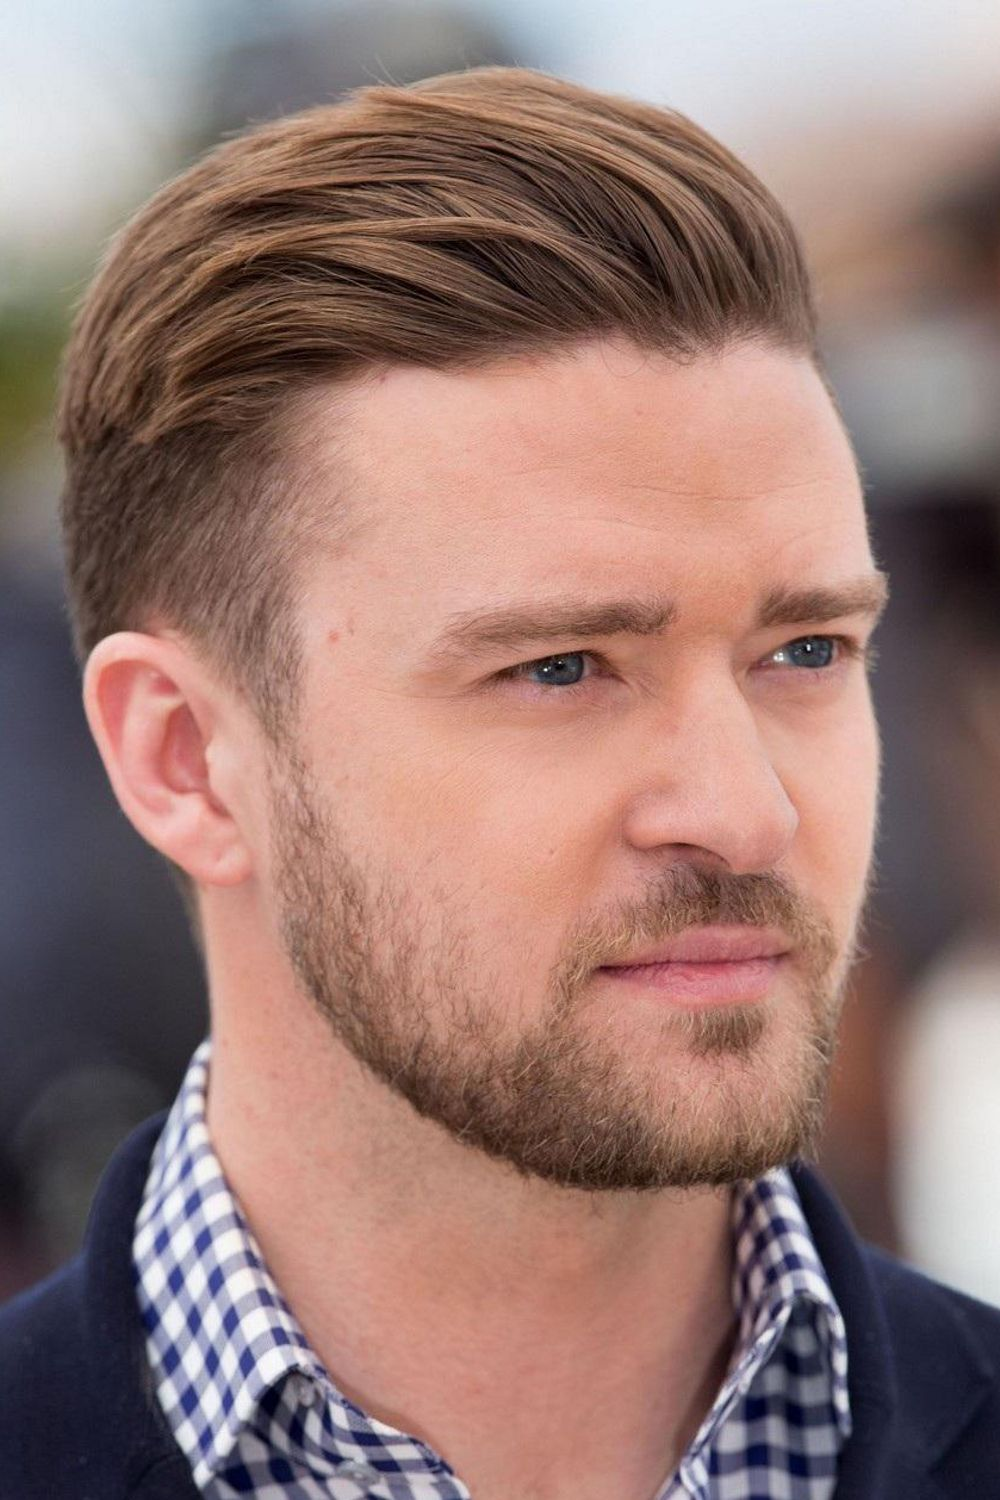 good hair styles for men justin timberlake herre h 229 r hair cuts hair styles og hair 2556 | 9026cc0f82859d2556c7861fe58e1002